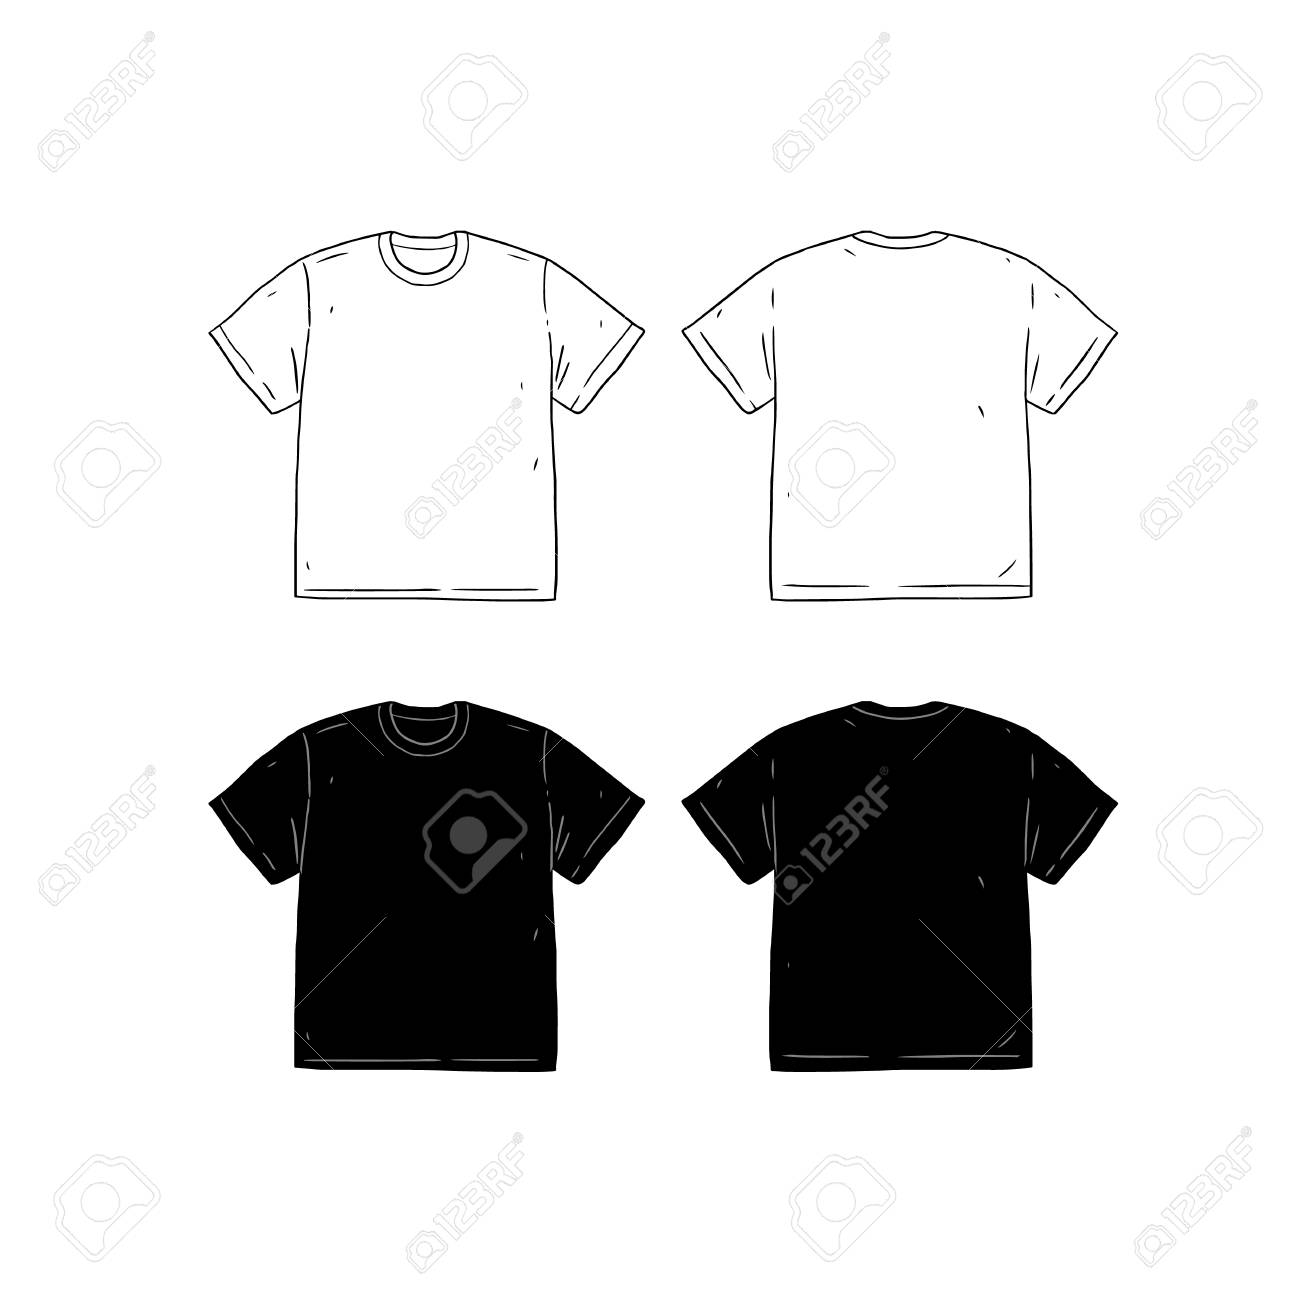 f354675ea Set of blank T-shirt design template hand drawn vector illustration. Front  and back